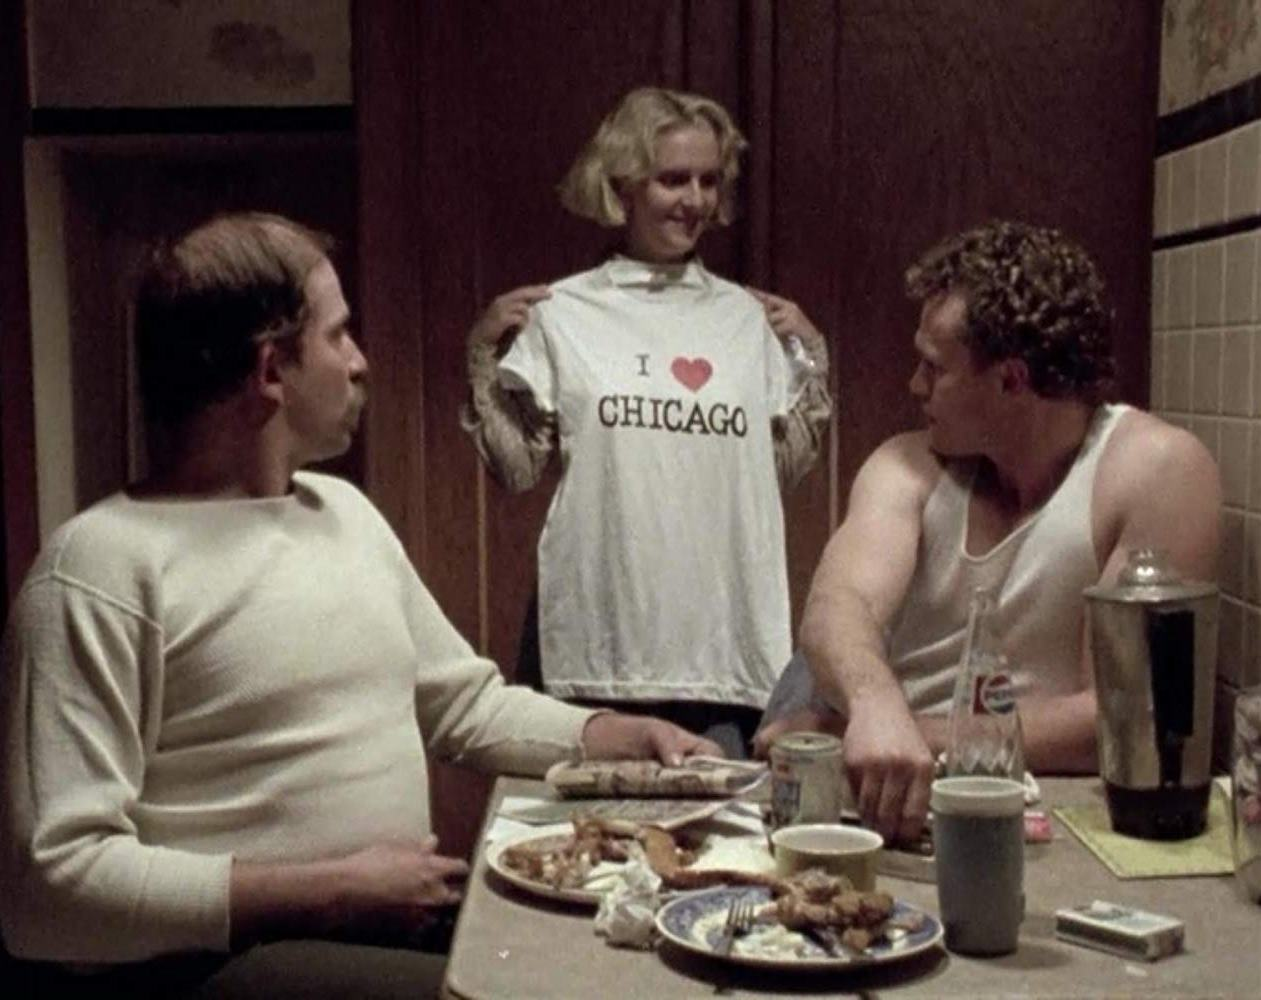 (l to r) Otis (Tom Towles), Becky (Tracy Arnold) and Henry (Michael Rooker) in Henry: Portrait of a Serial Killer (1986)